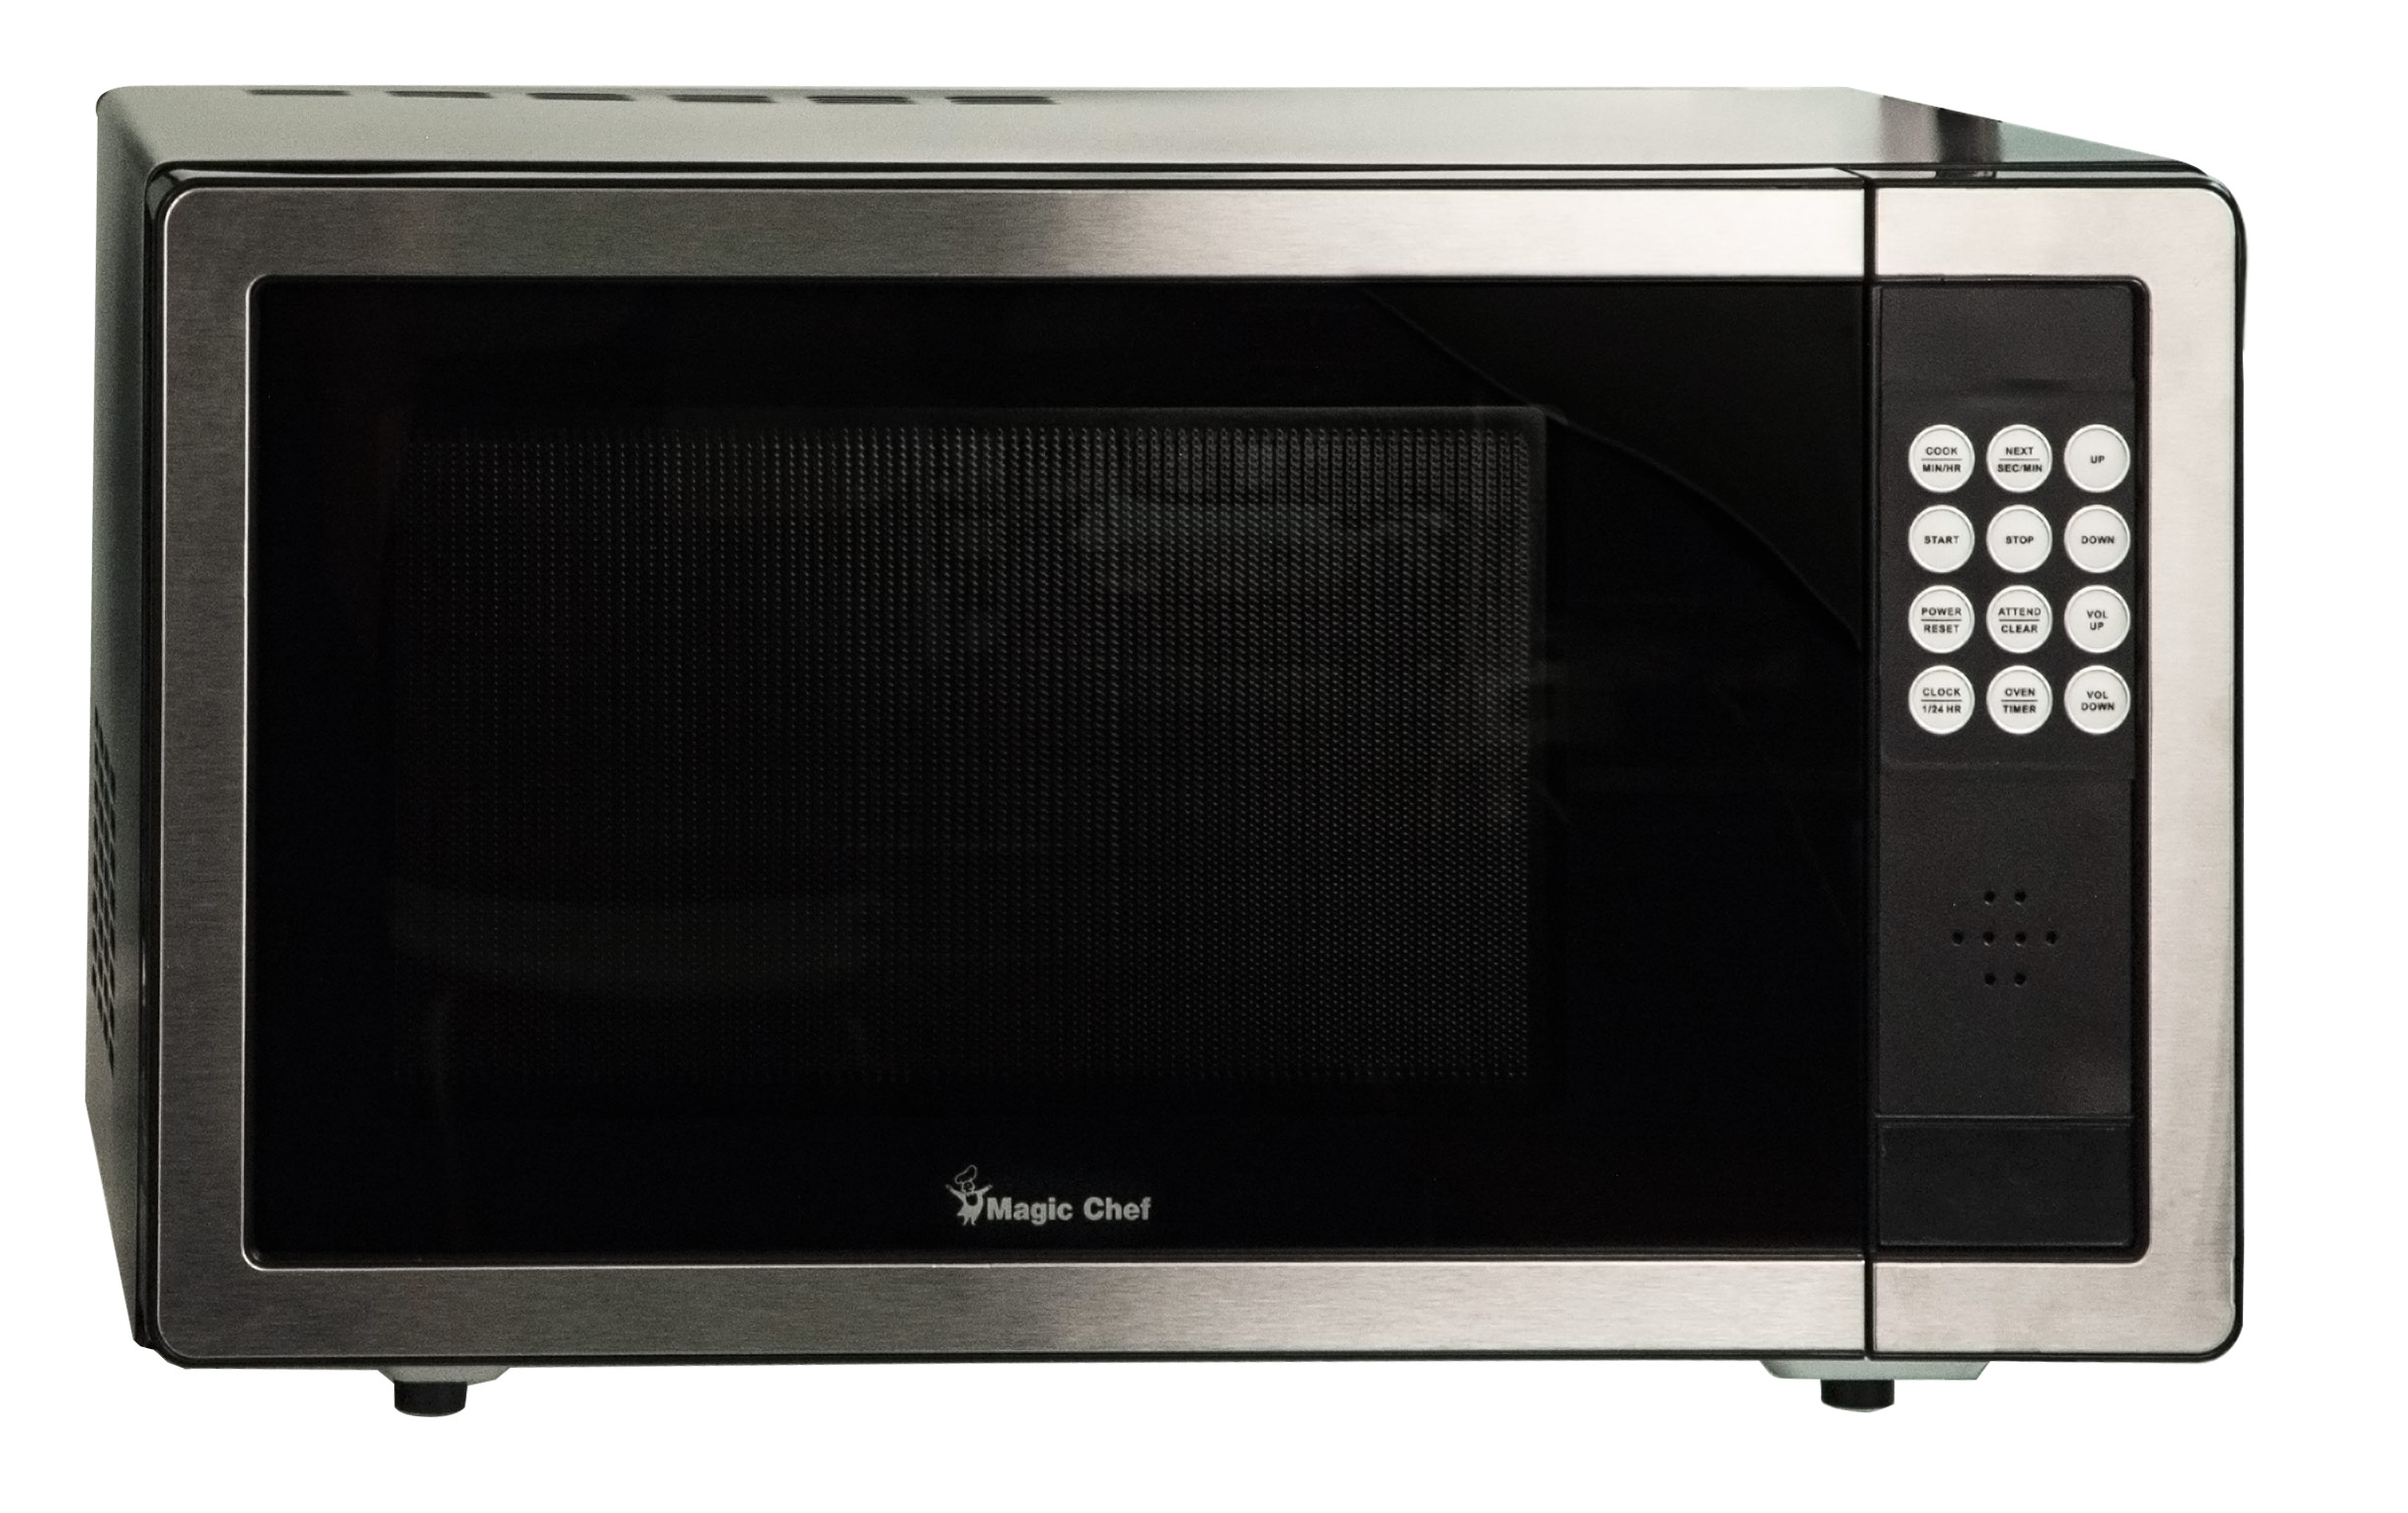 Talking Microwave Oven - Stainless Steel